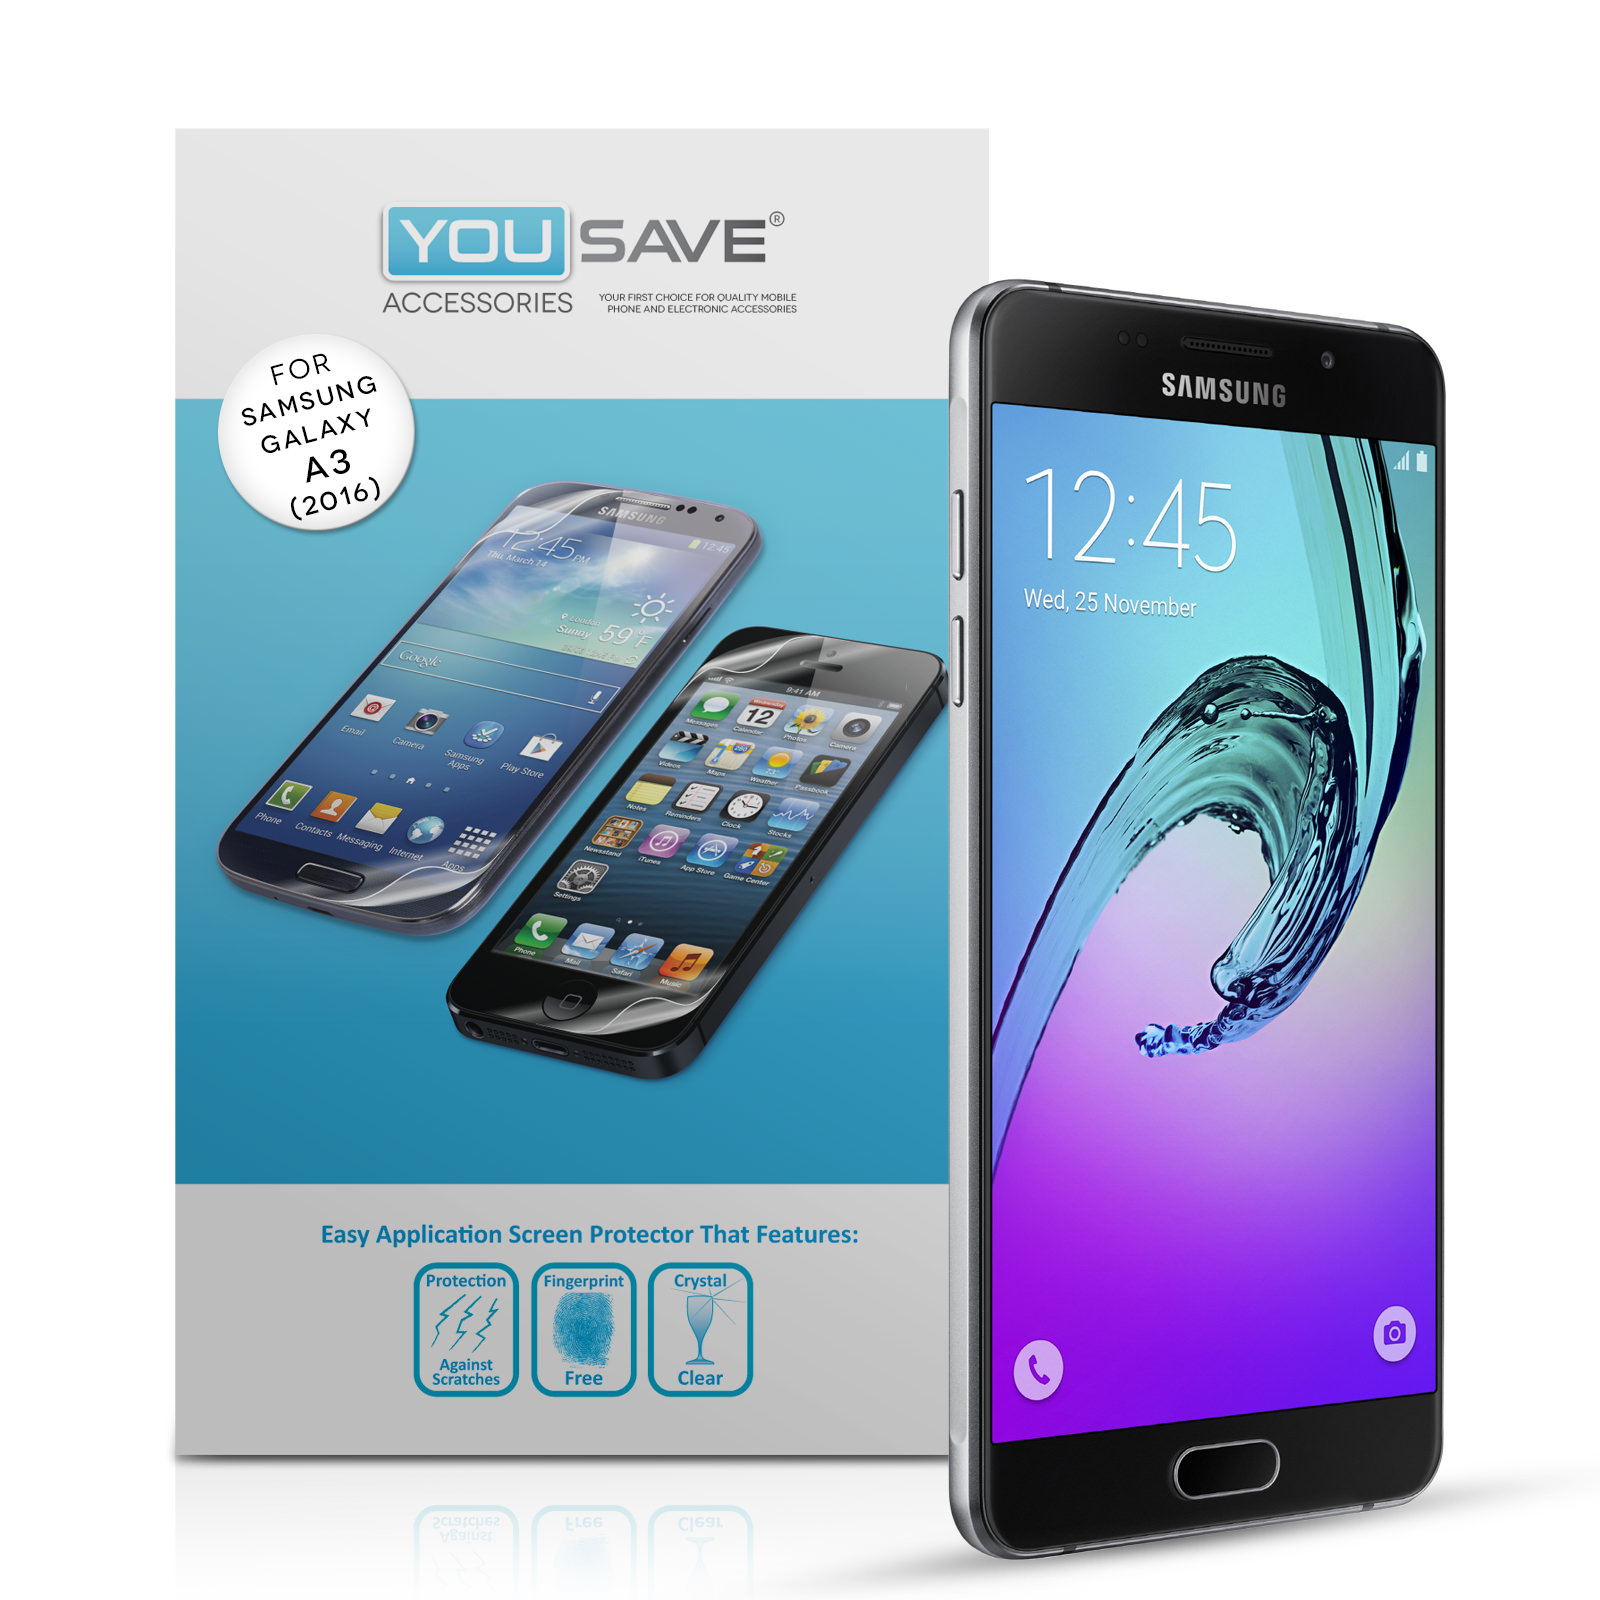 Yousave Accessories Samsung Galaxy A3 (2016) Screen Protectors x5